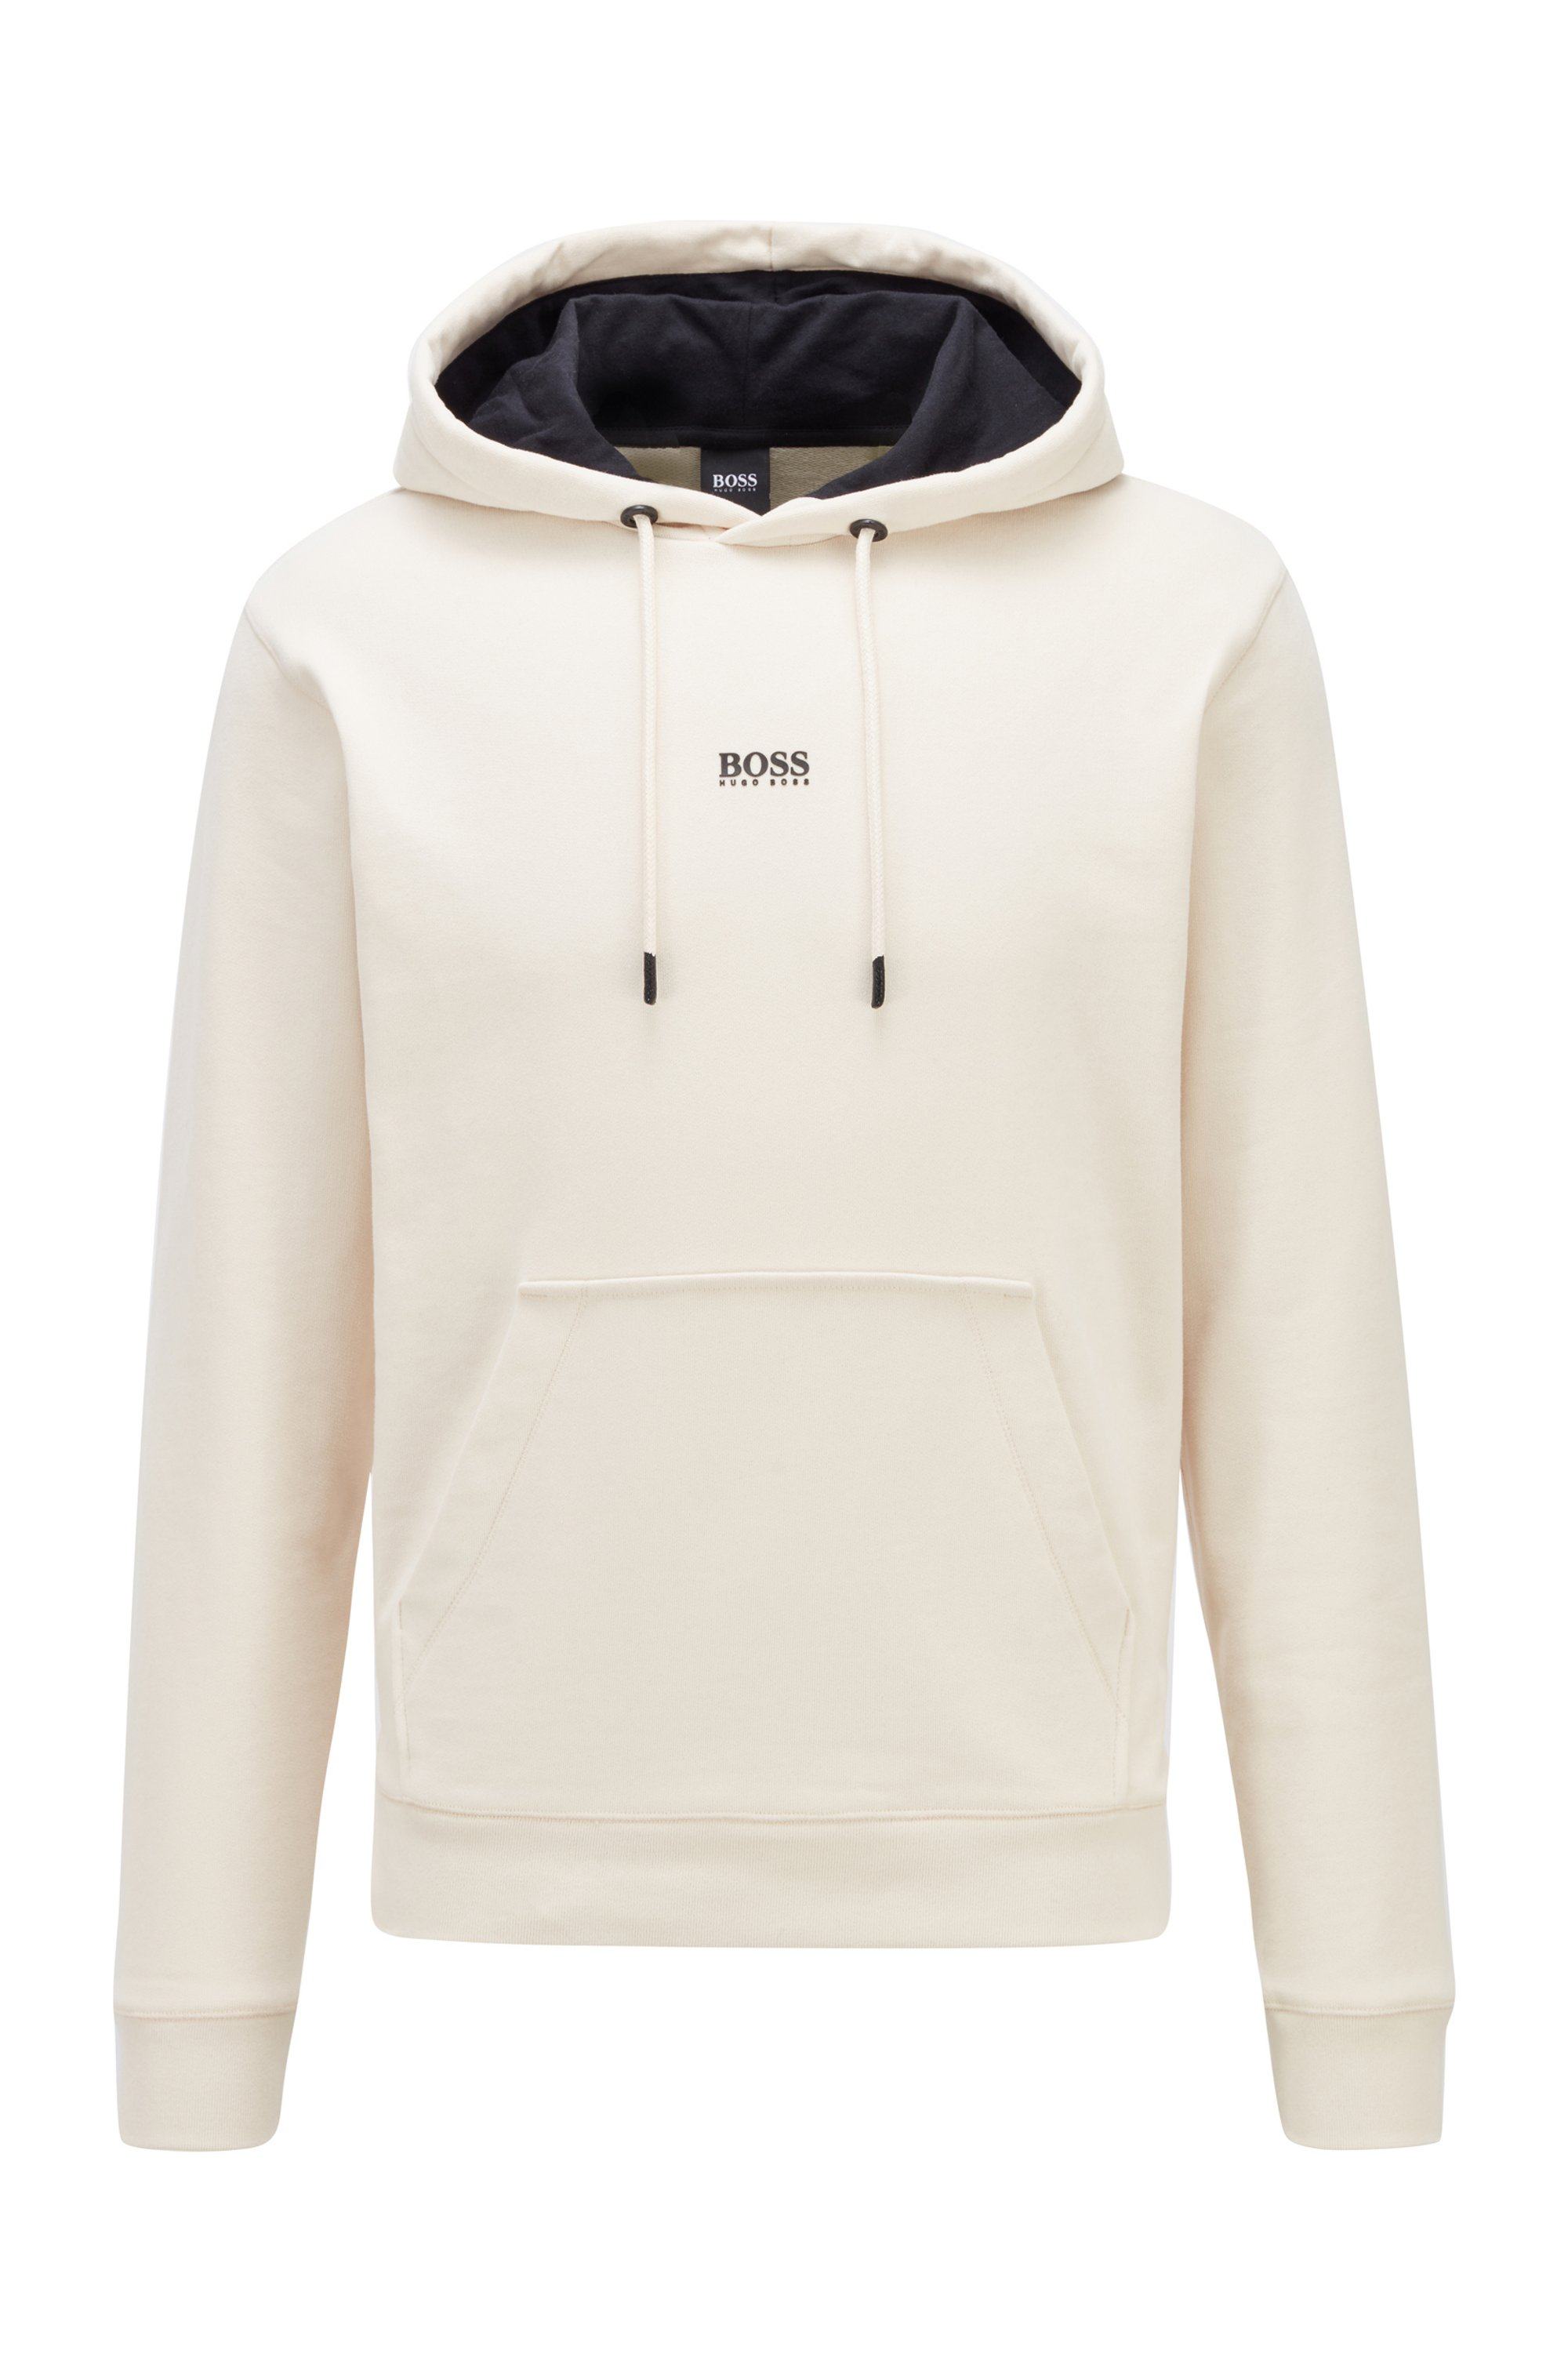 Relaxed-fit hooded sweatshirt in French terry with logo, White